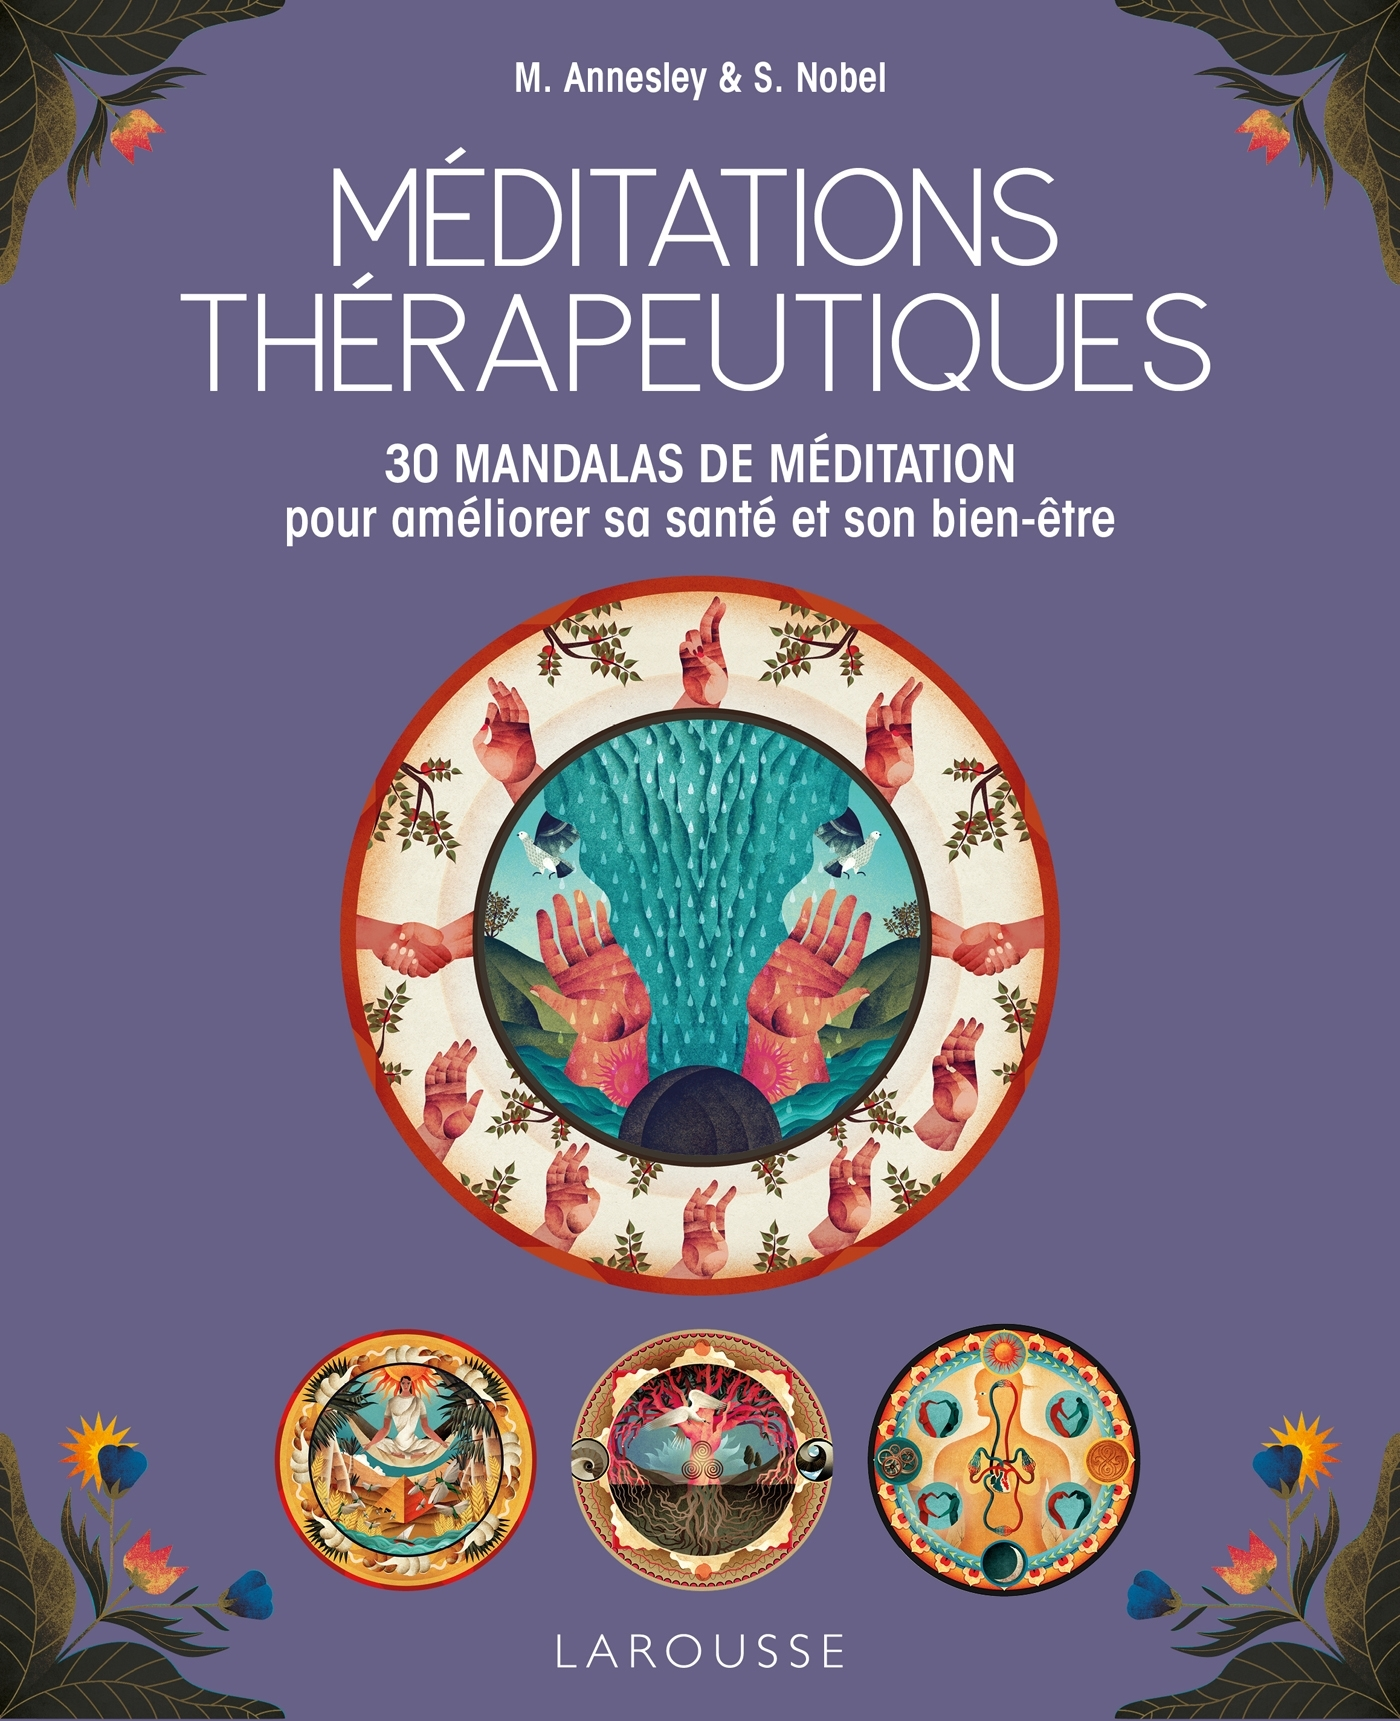 MEDITATIONS THERAPEUTIQUES